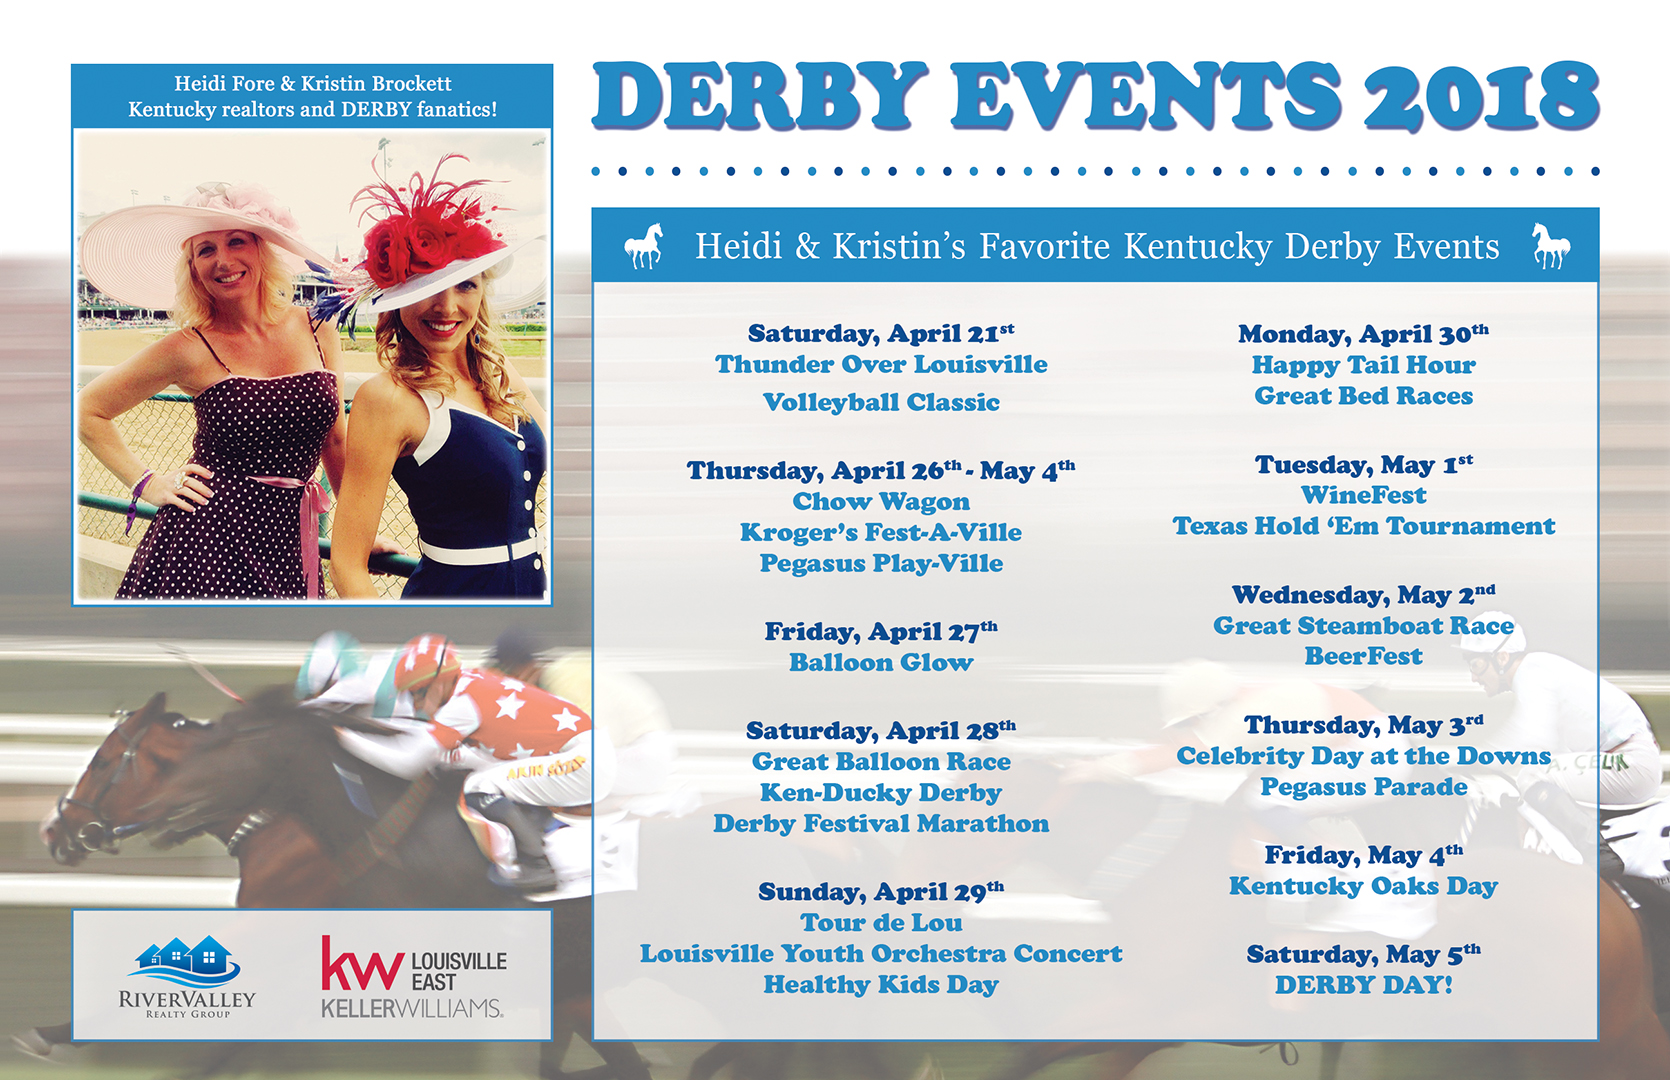 Heidi Fore & Kristin Brockett's favorite Kentucky Derby events!